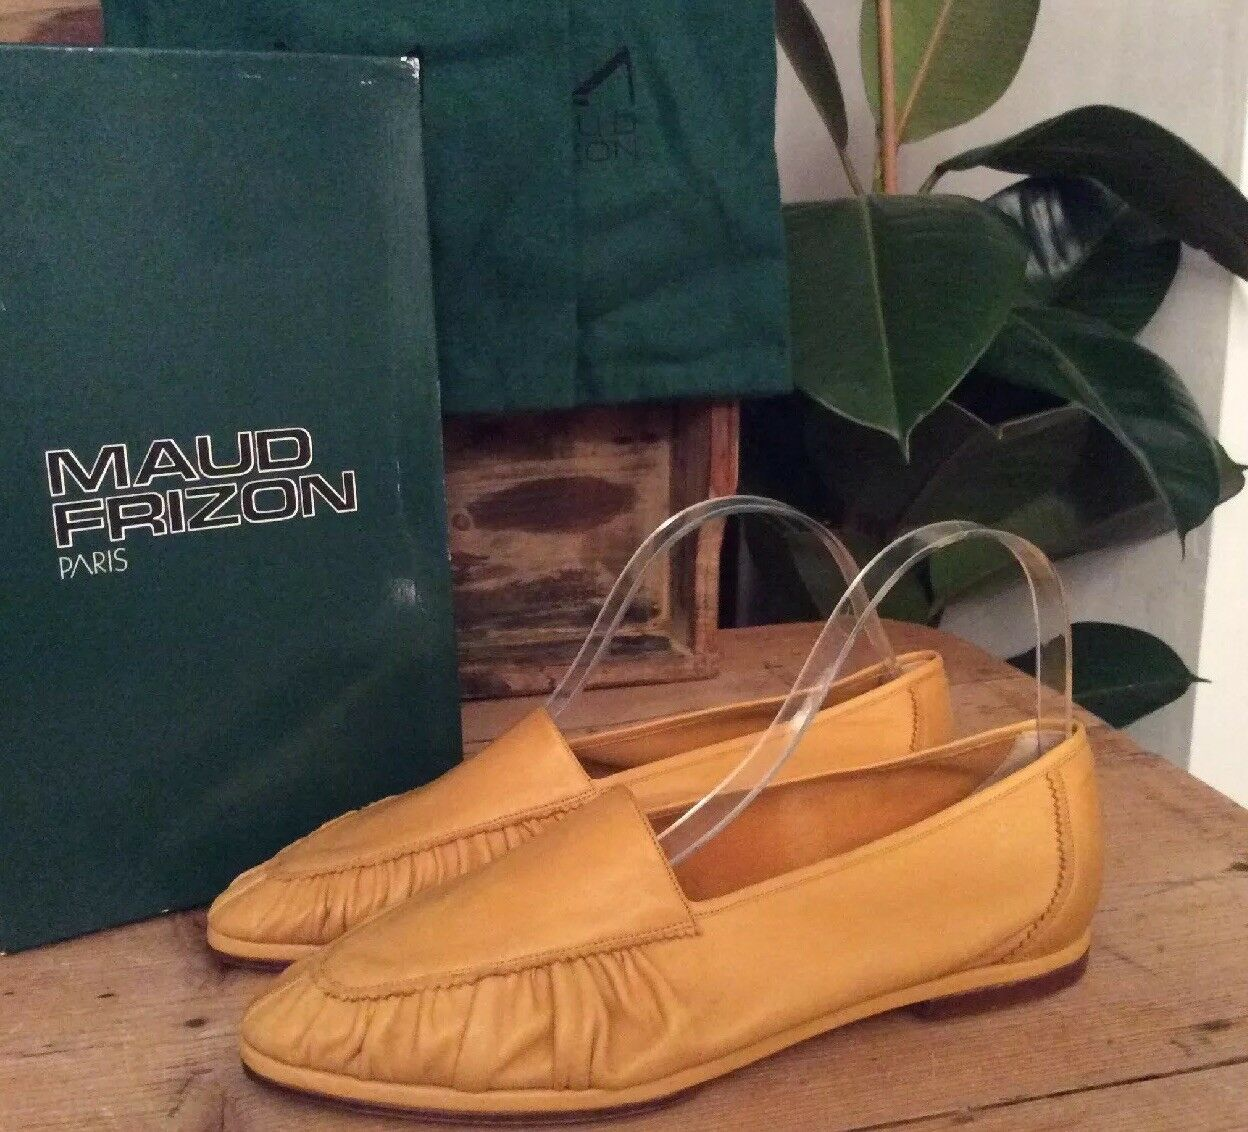 New In Box The Finest Finest Finest Nappa Leather Moccasins By Maud Frizon Size 6.5Uk 39.5EUR 06290e